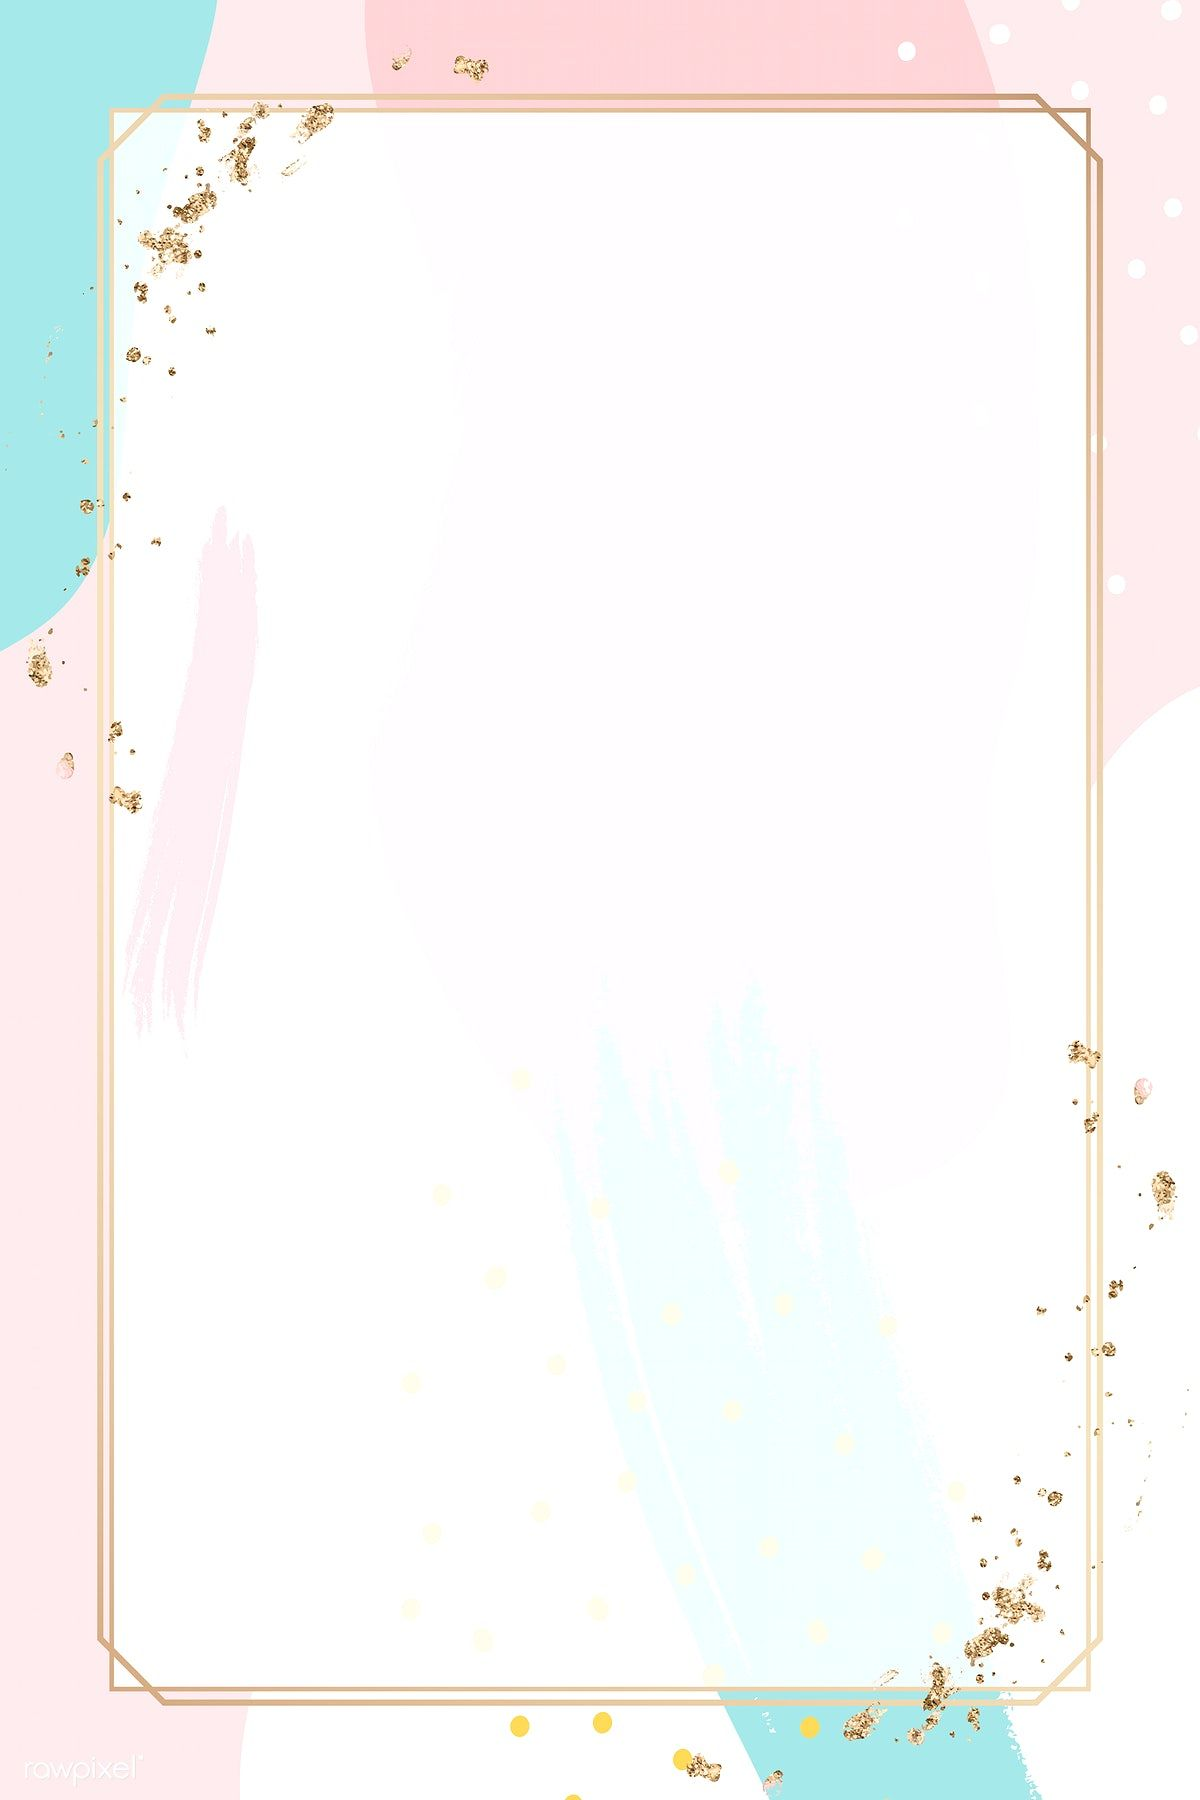 Download premium vector of Rectangle gold frame on colorful Memphis pattern background vector by Aum about background, rame, rectangle gold frames, rectangle Memphis frame vector, and colorful modernism 1209384